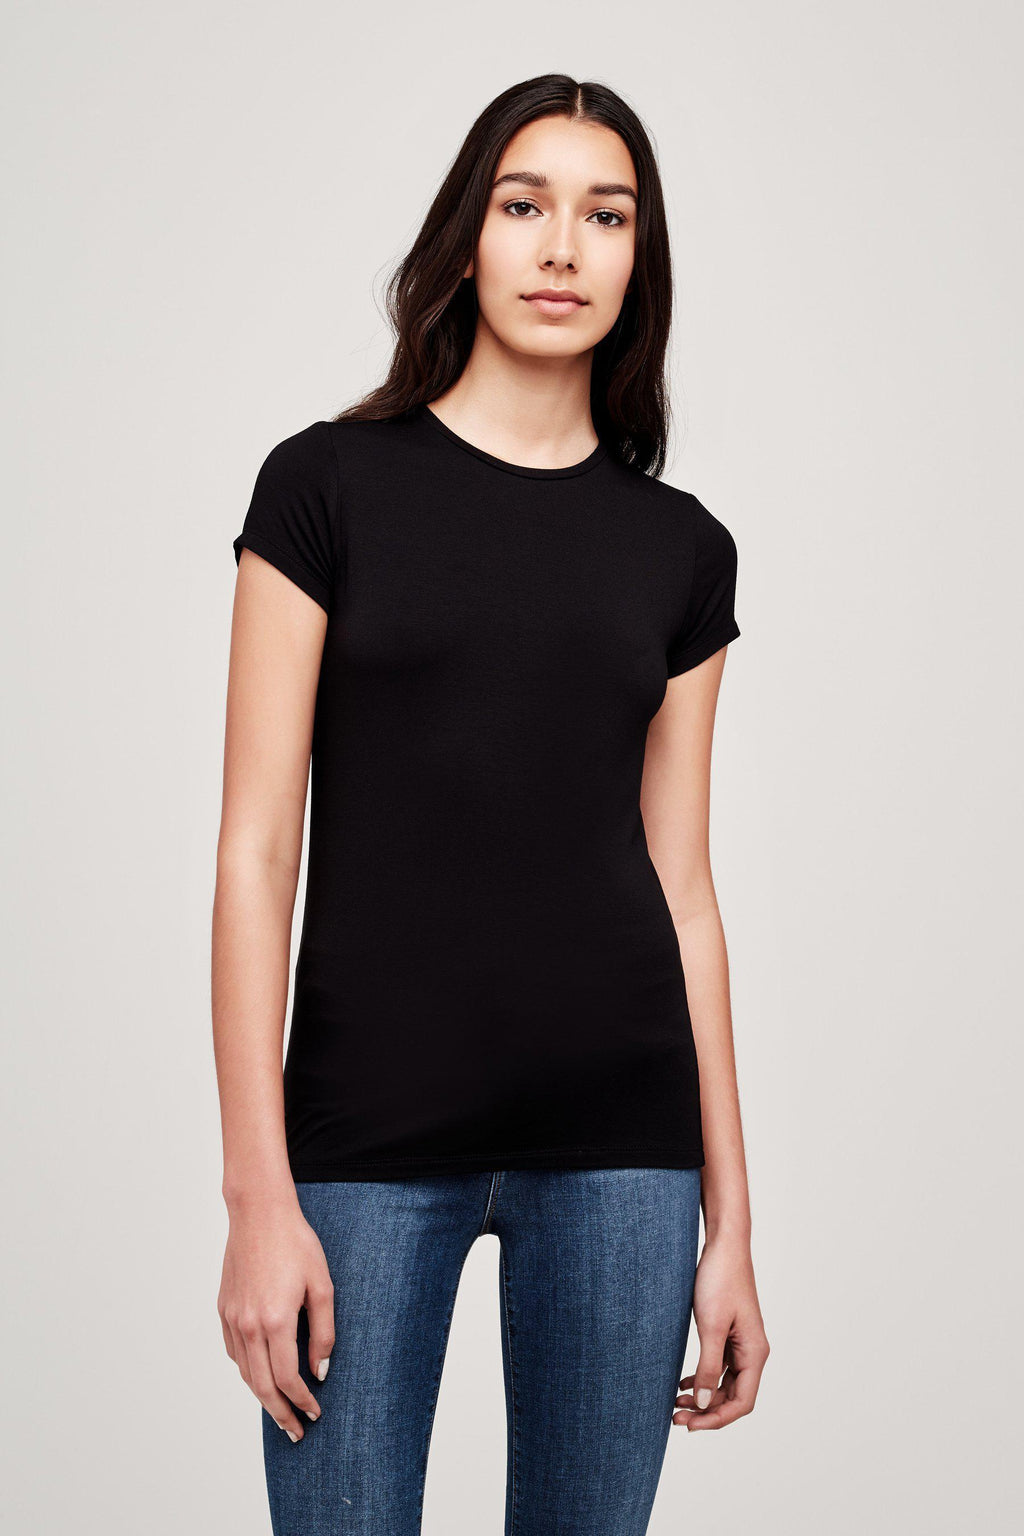 L'AGENCE RESSI CREW NECK TEE IN BLACK